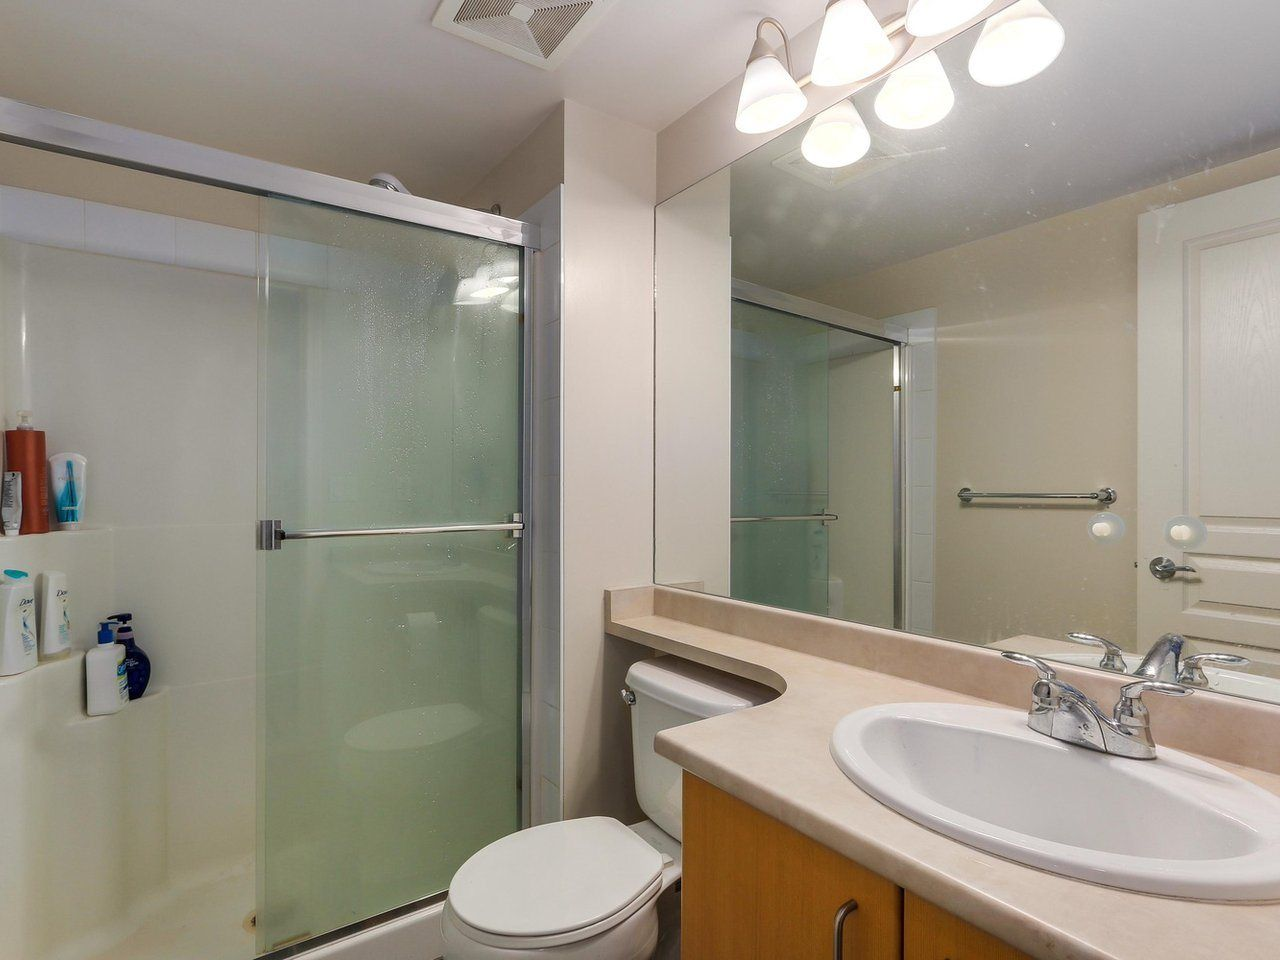 Photo 14: Photos: 205 3388 MORREY Court in Burnaby: Sullivan Heights Condo for sale (Burnaby North)  : MLS®# R2326824